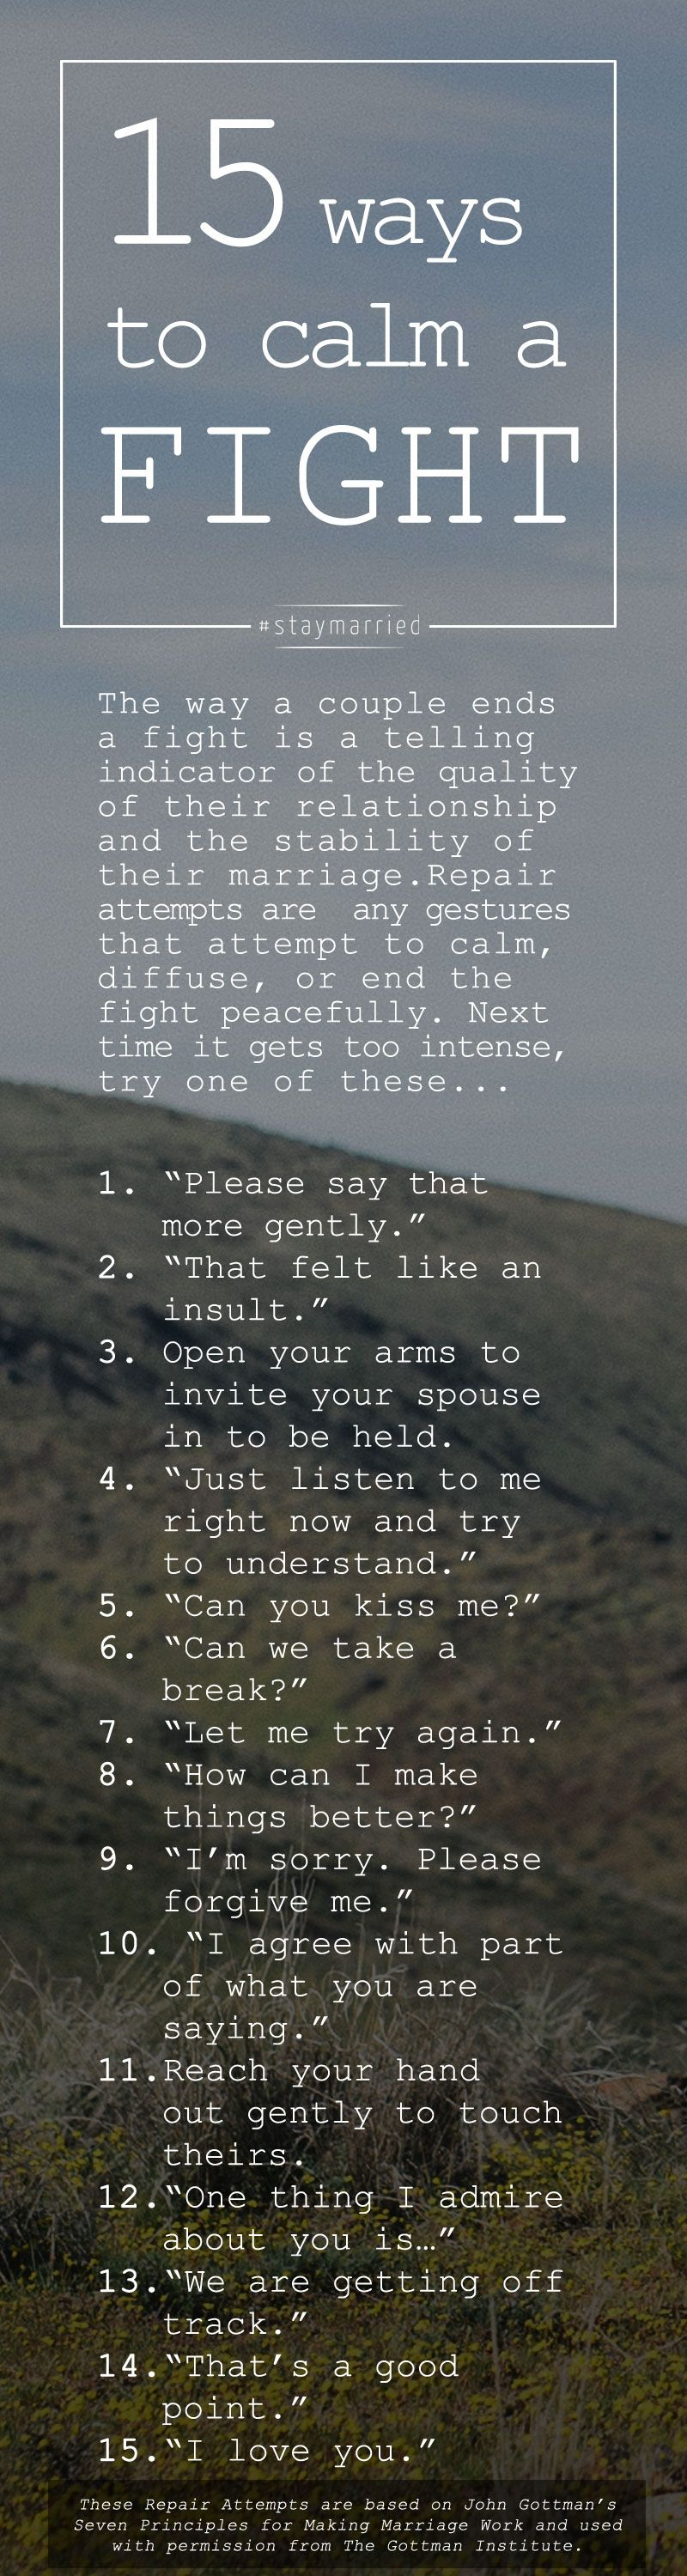 15 Ways To Calm A Fight How To Make And Receive Repair Attempts